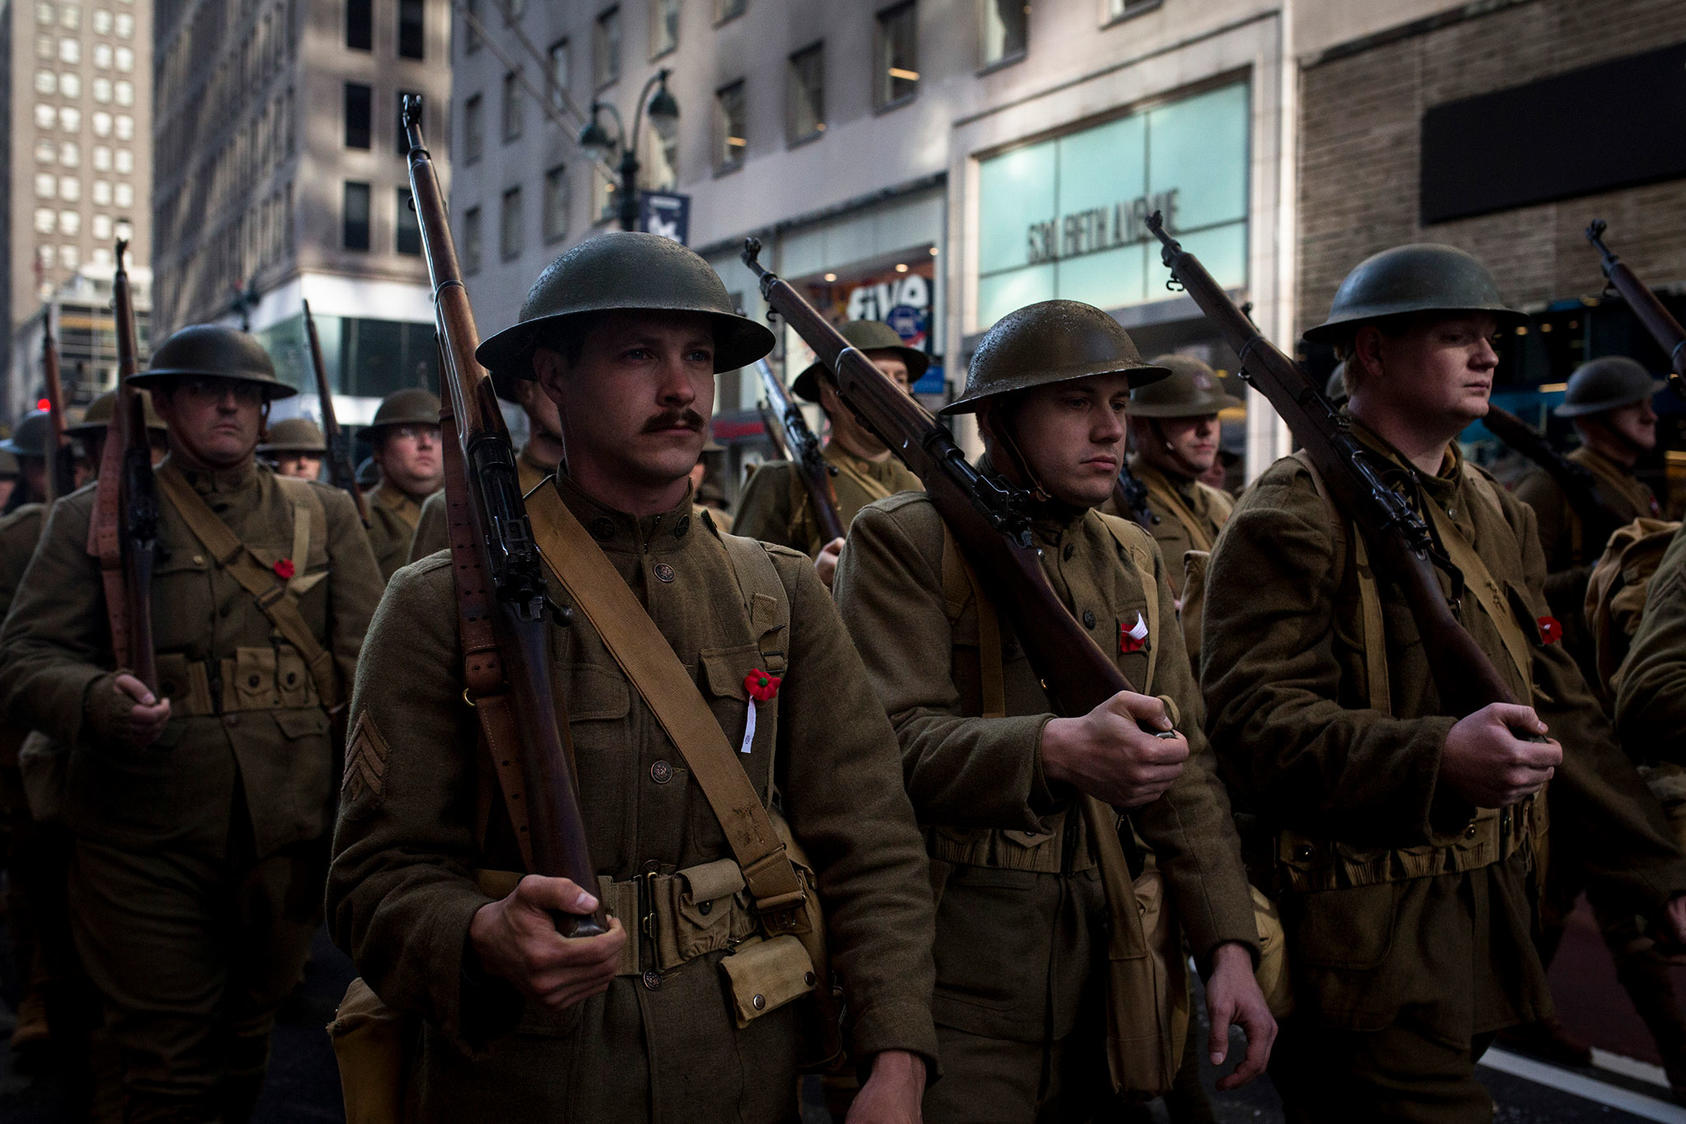 Re-enactors wear World War I era U.S. Army uniforms during the Veterans Day Parade in New York, Nov. 11, 2018. This year marks the 100th since the end of the war. (Dave Sanders/The New York Times)